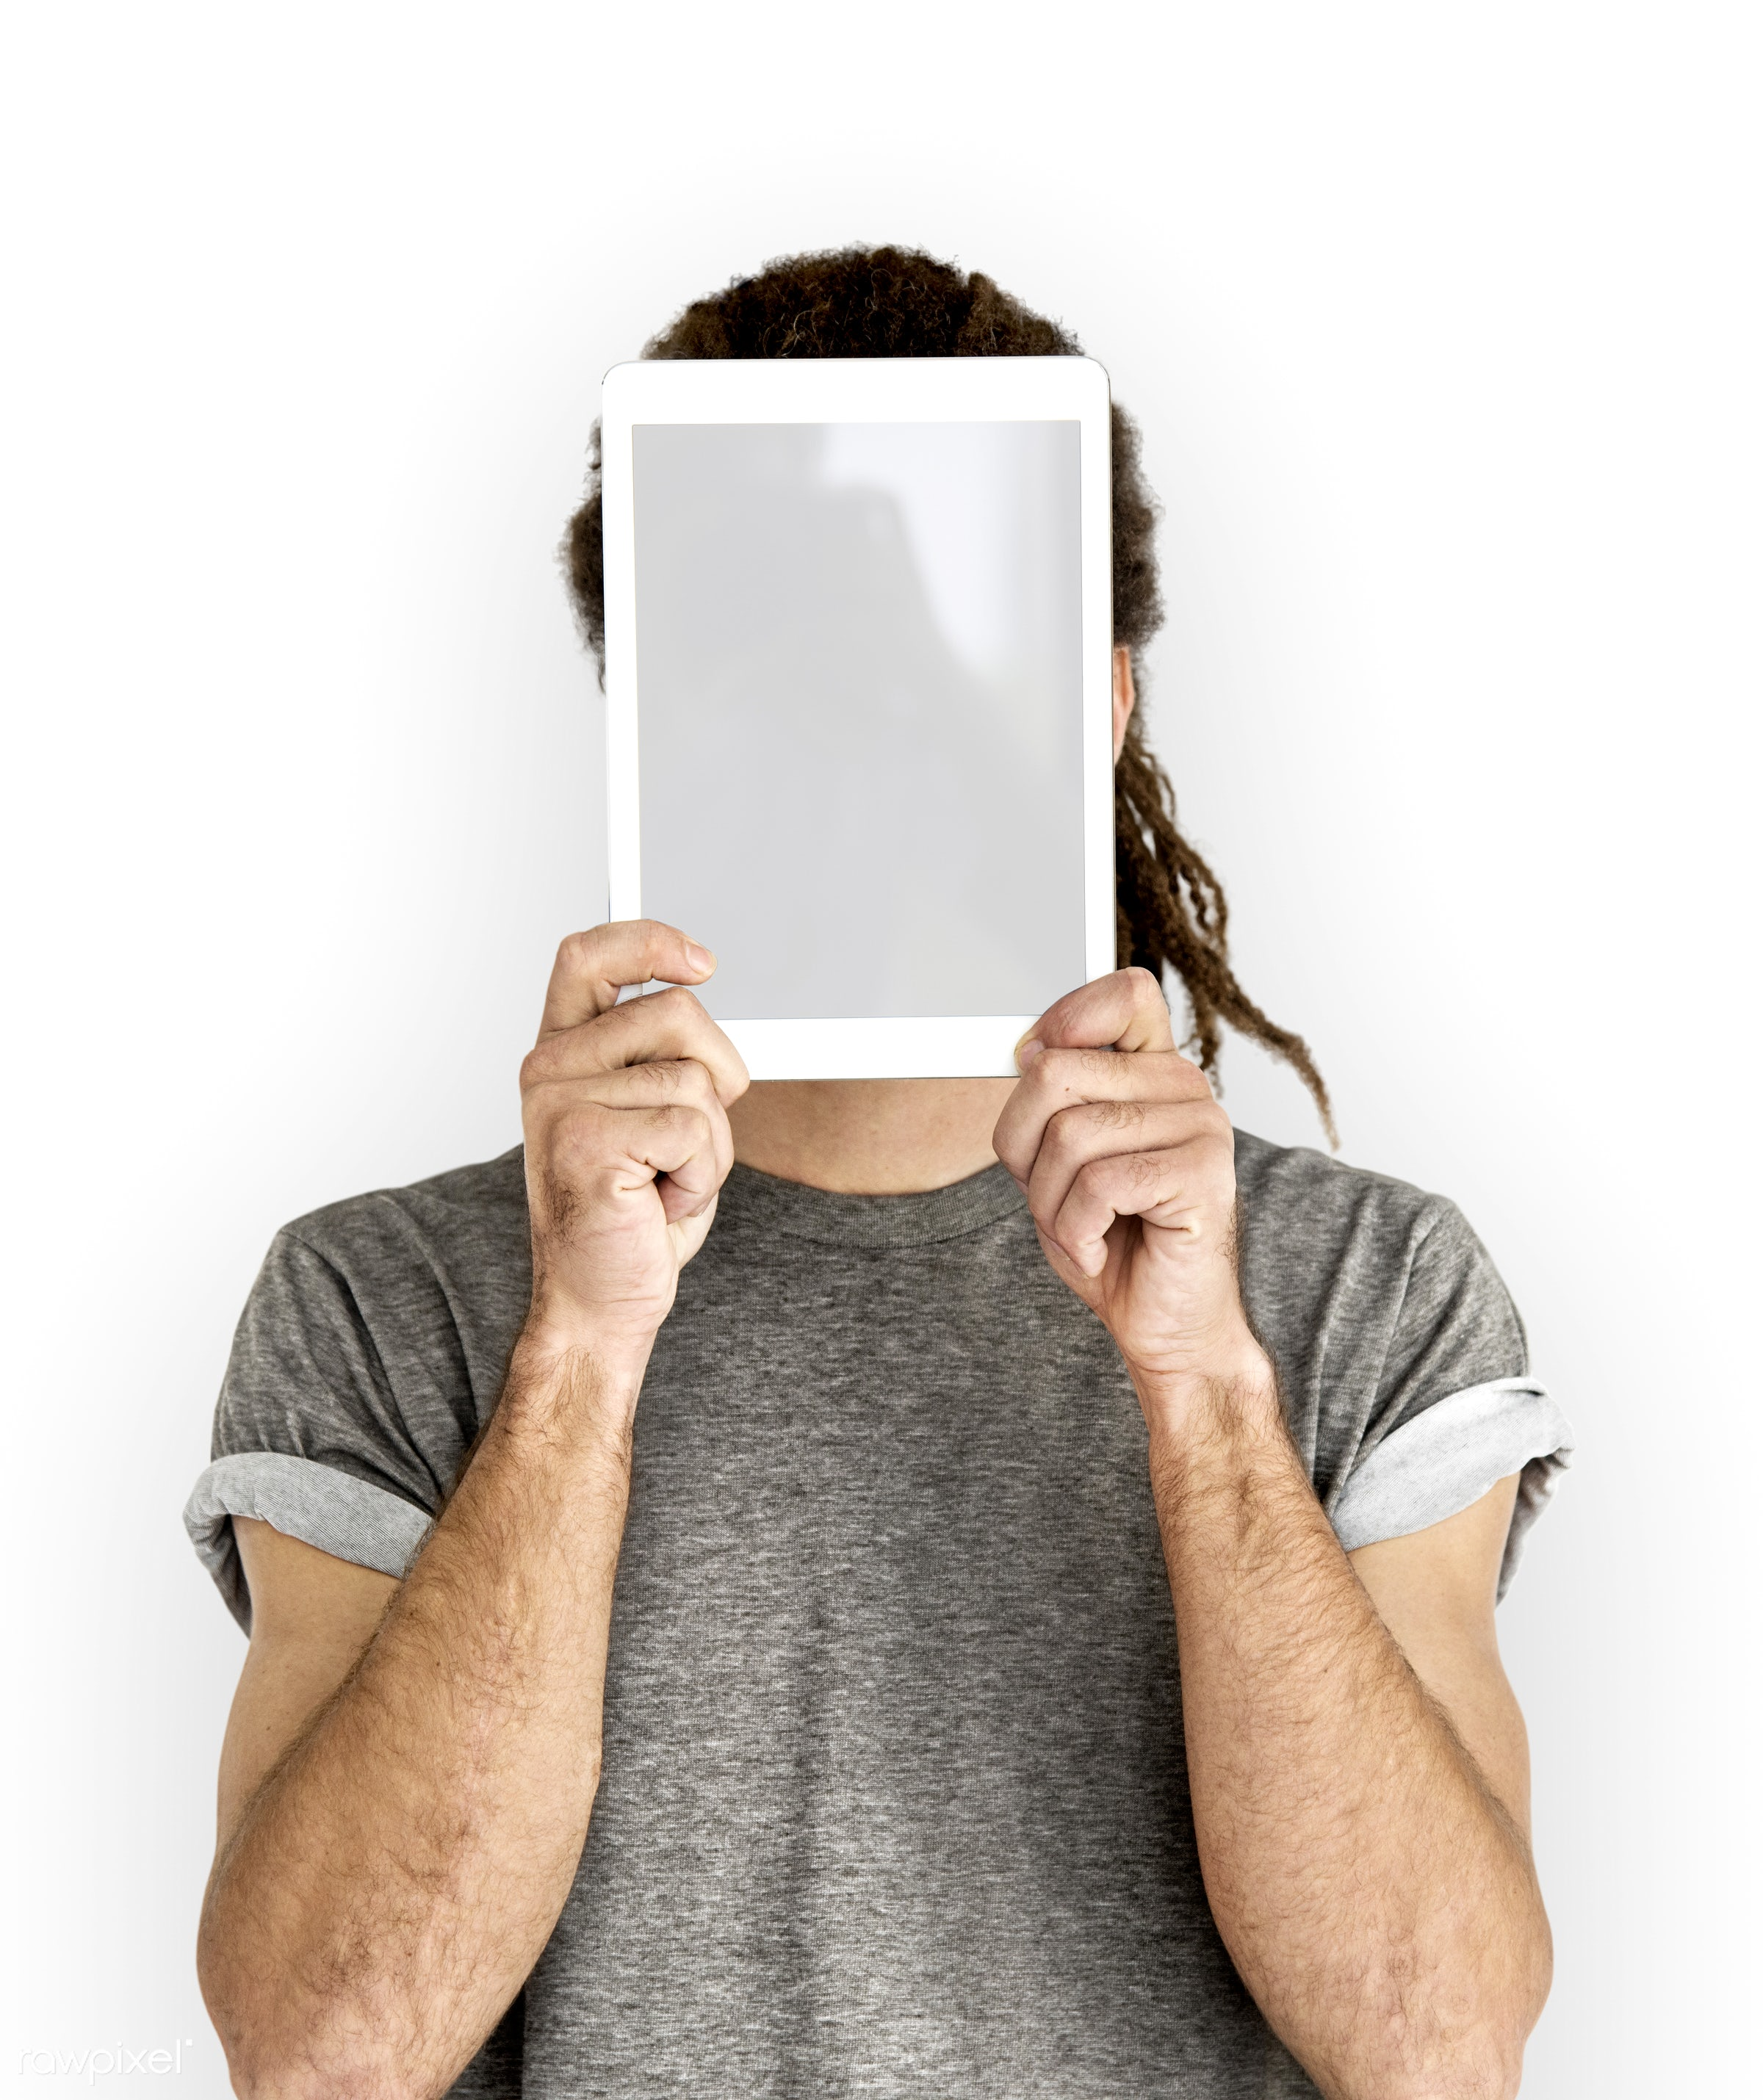 blank, casual, connection, copy space, covered, covered face, covering, digital tablet, dreadlocks, dreads, gadget, hidden,...